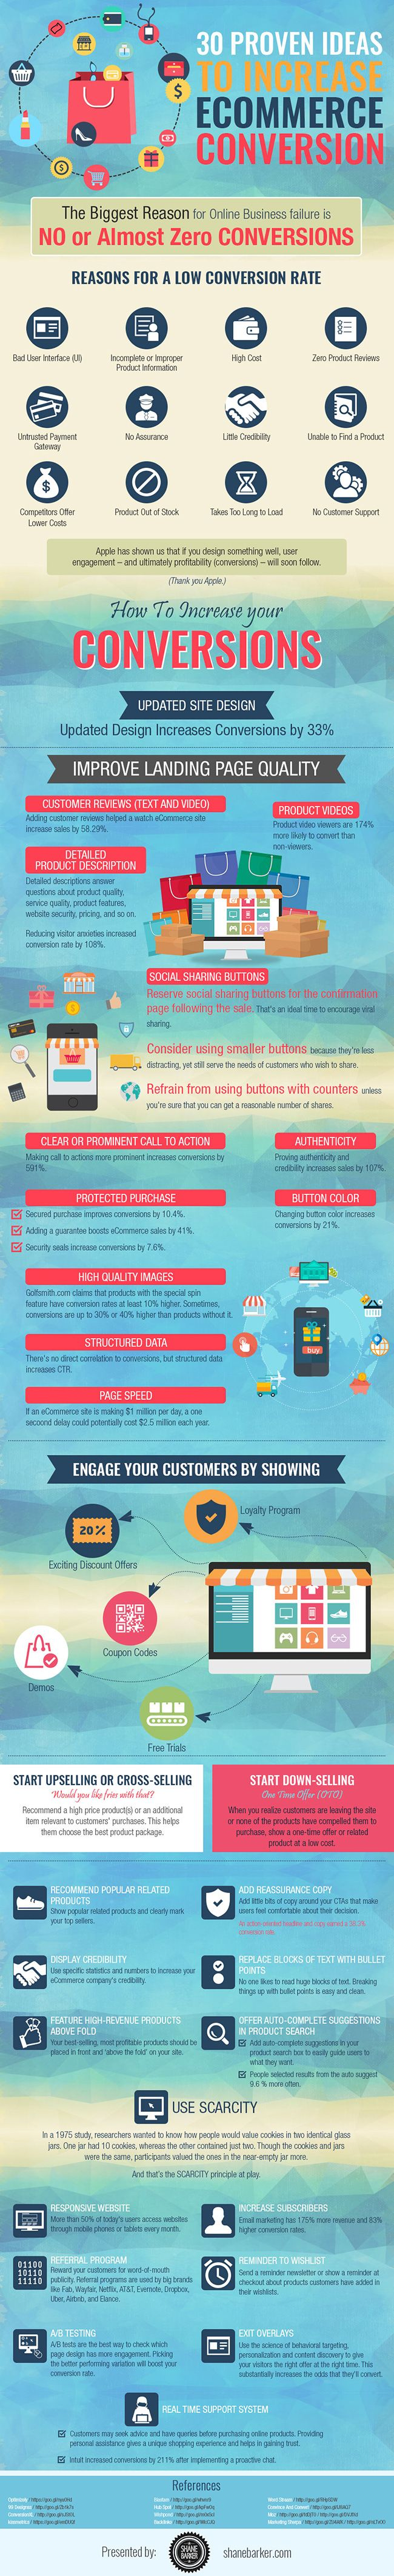 43 best marketing images on pinterest social media online 30 proven ideas that increase ecommerce conversion rates infographic via angela4design from fandeluxe Images